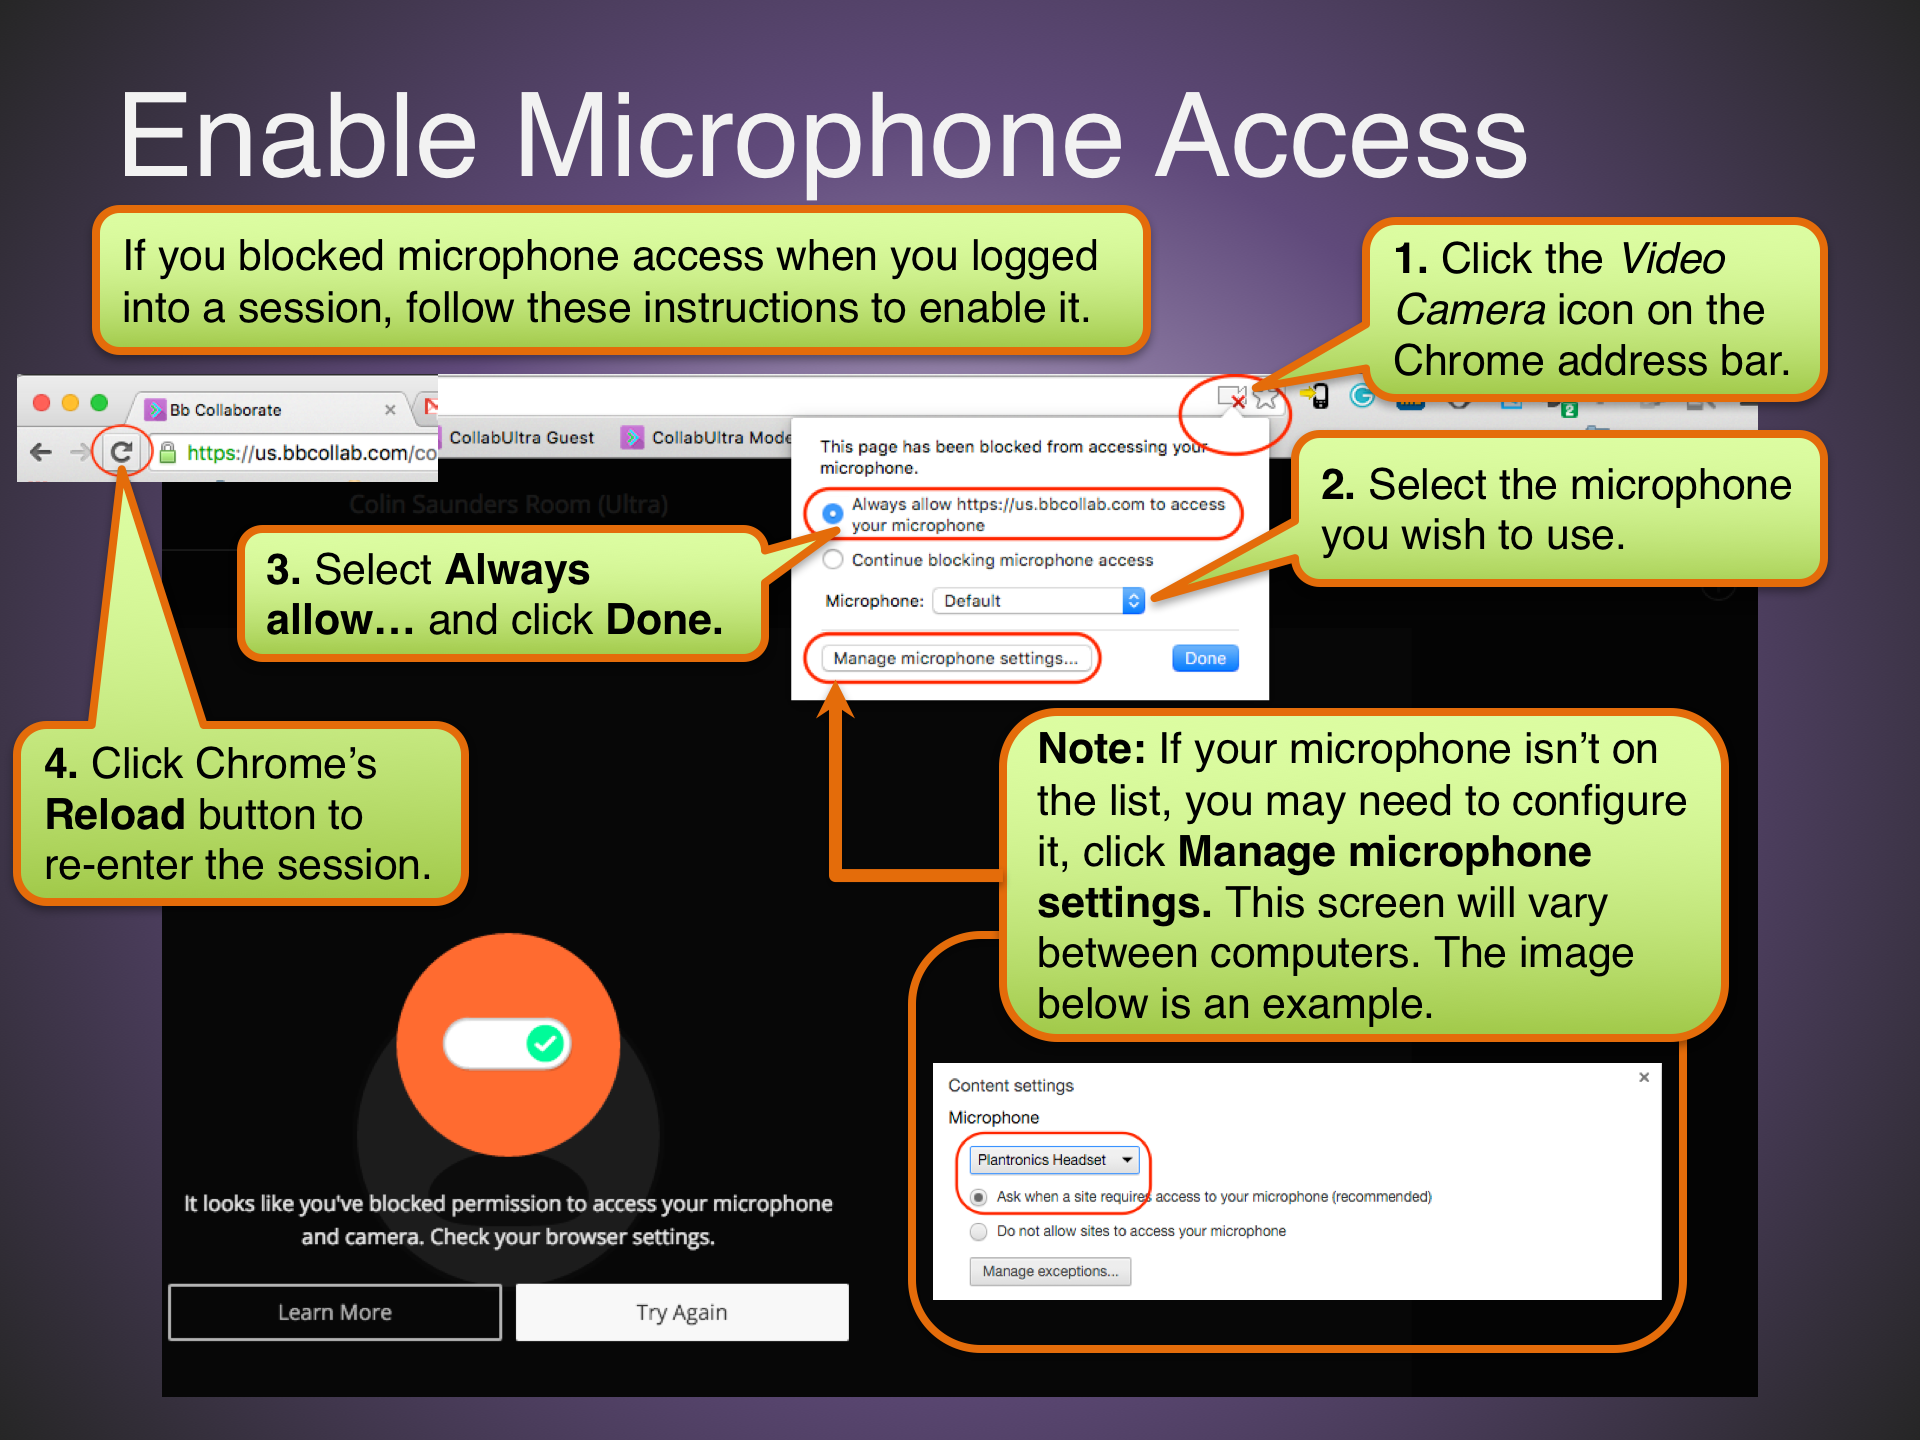 Enable Microphone Access